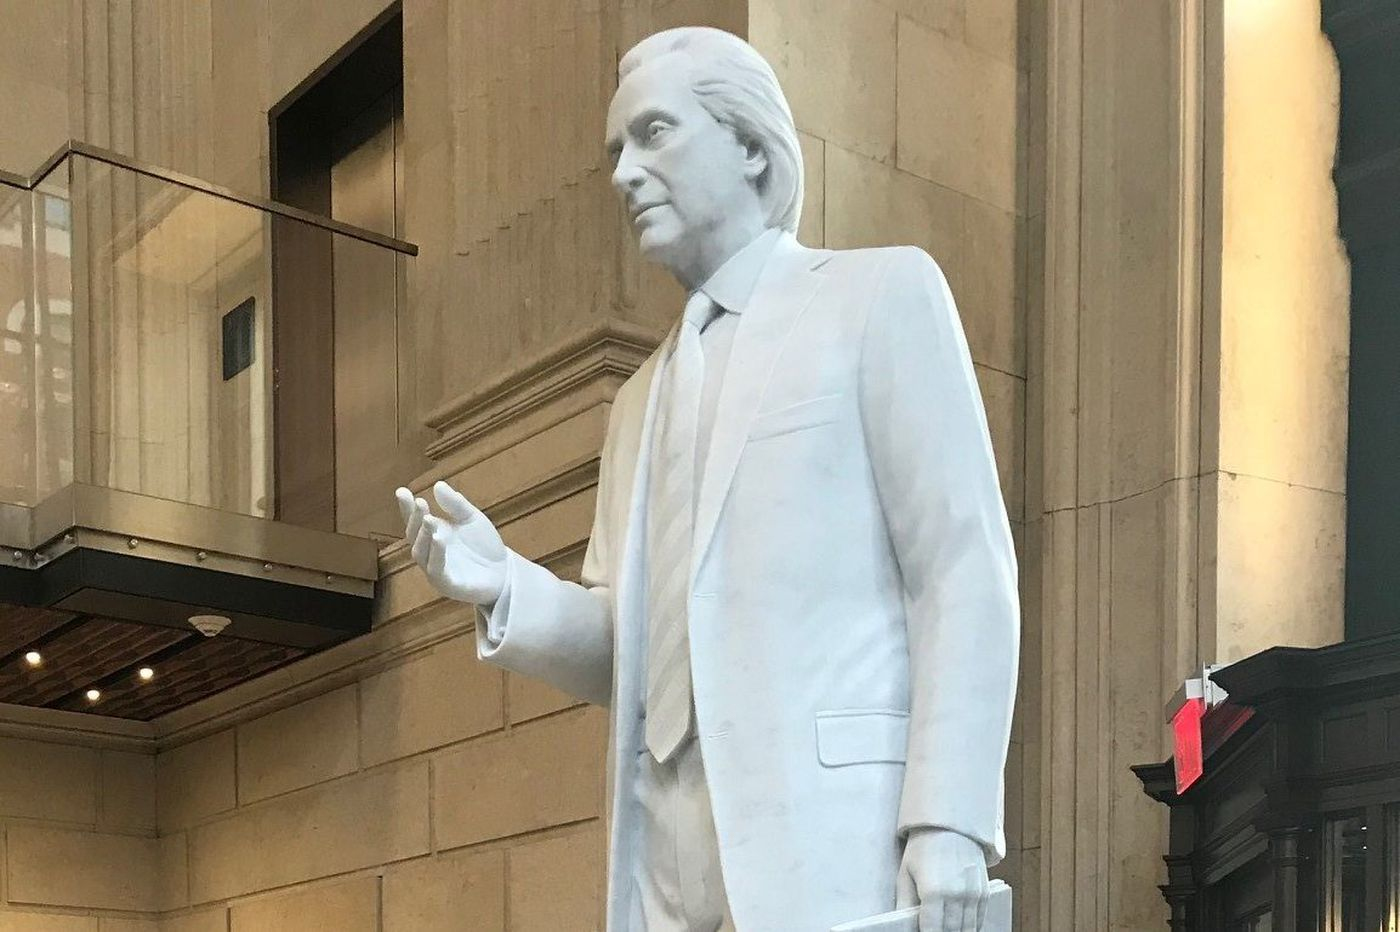 Larger than life, it's lawyer Tom Kline, in stone, at Drexel - Update 4/16